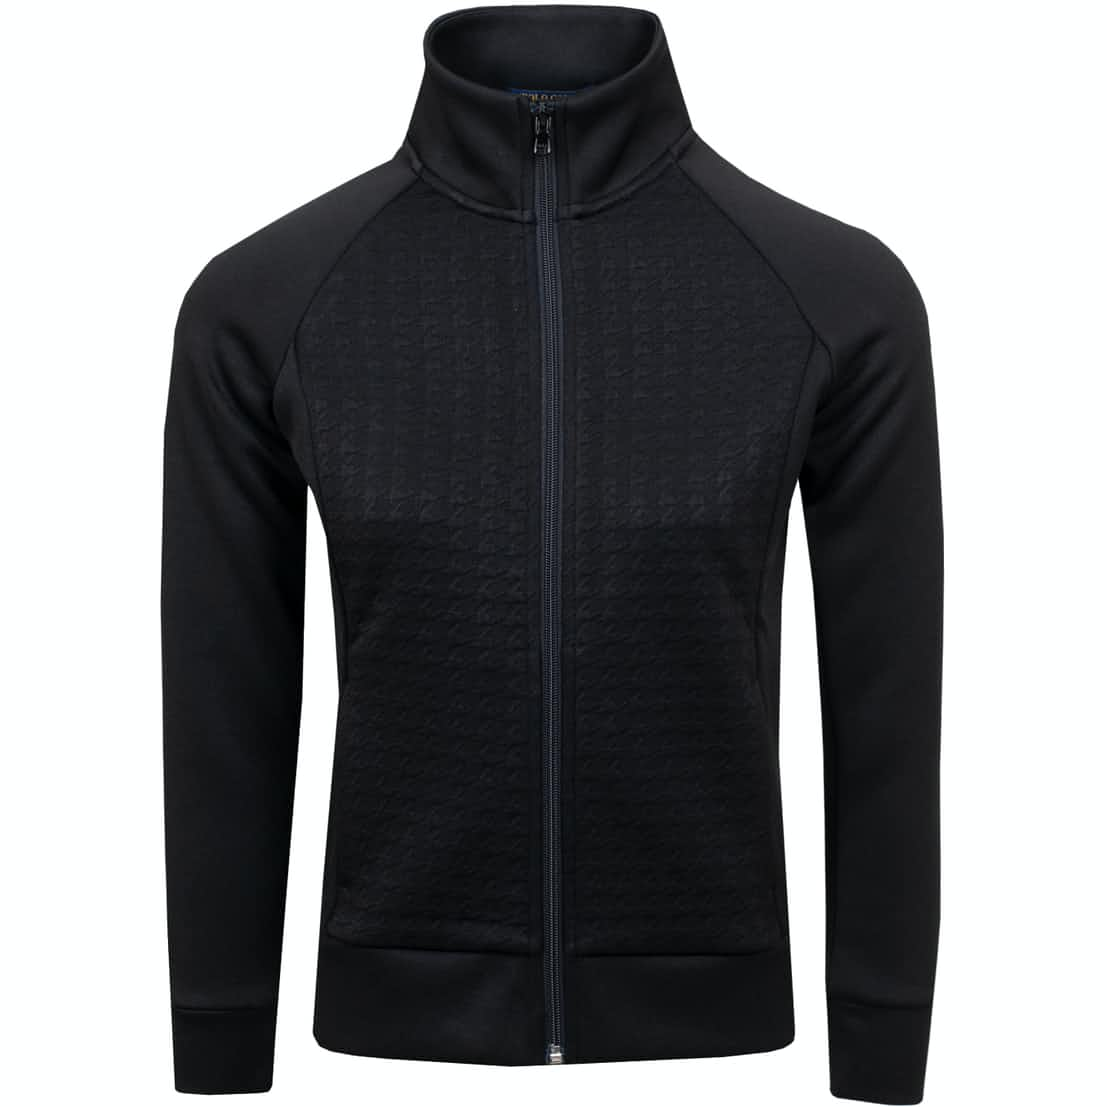 Womens LS Quilted Jersey Polo Black - SS19